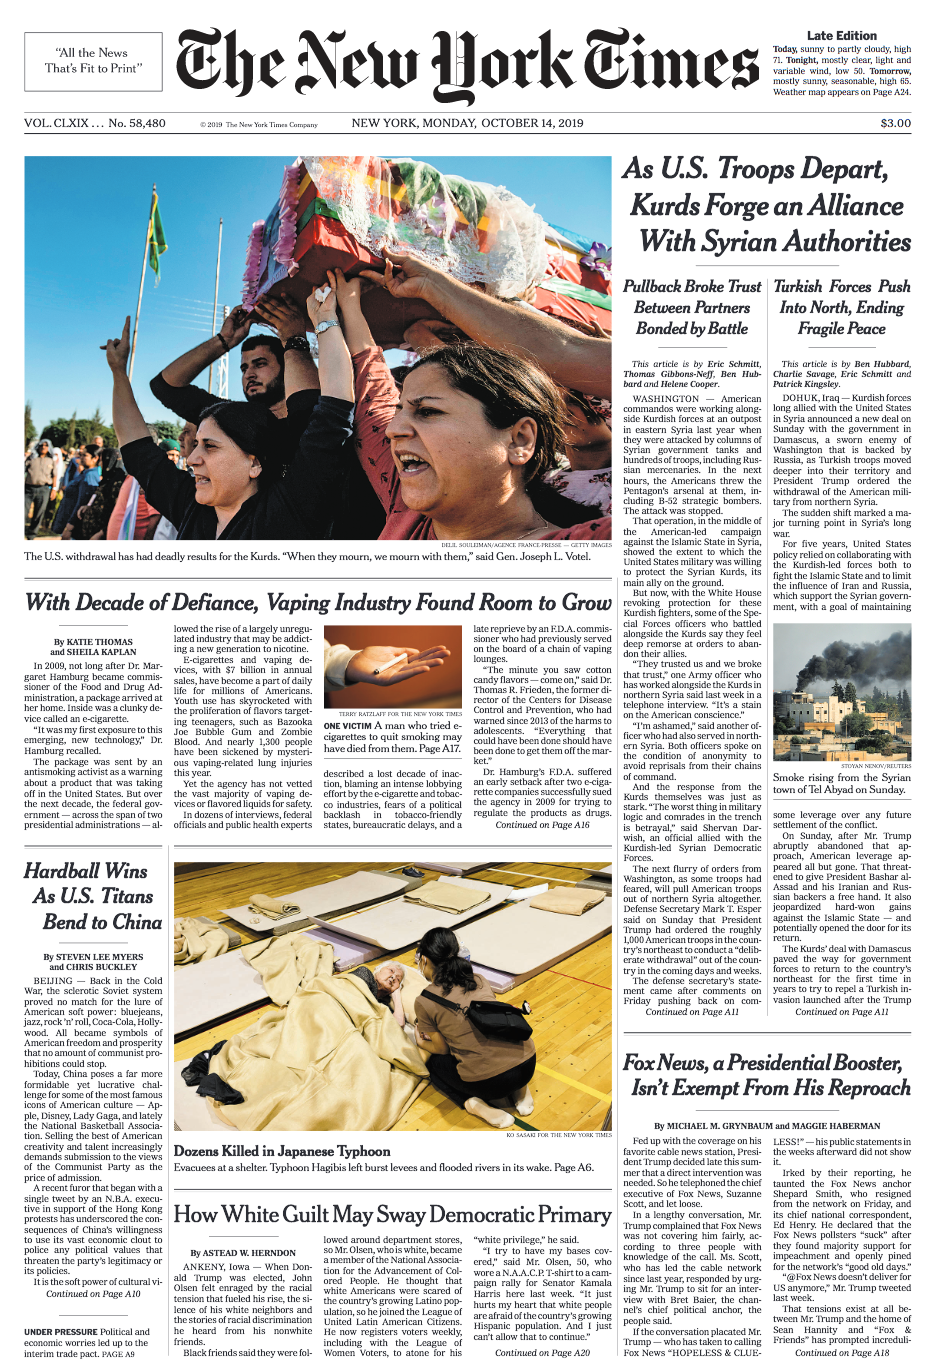 NYT_FrontPage_101419.png